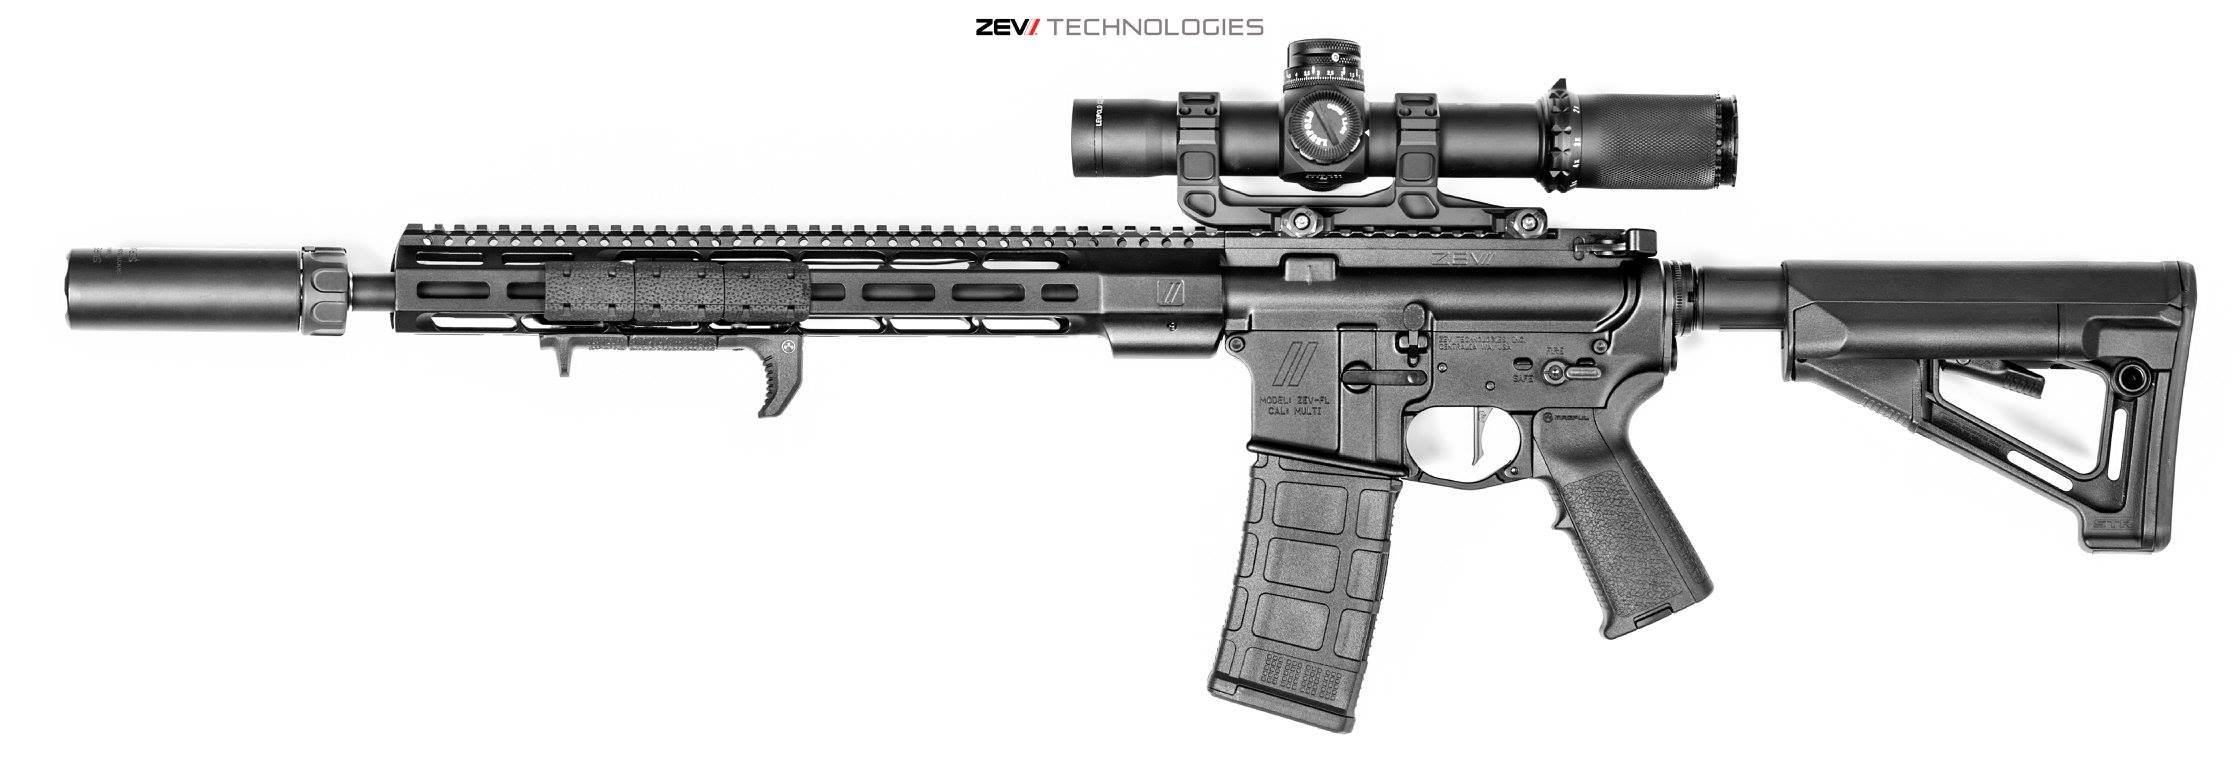 First Look: ZEV Technologies AR-15 and AR-10 Rifles